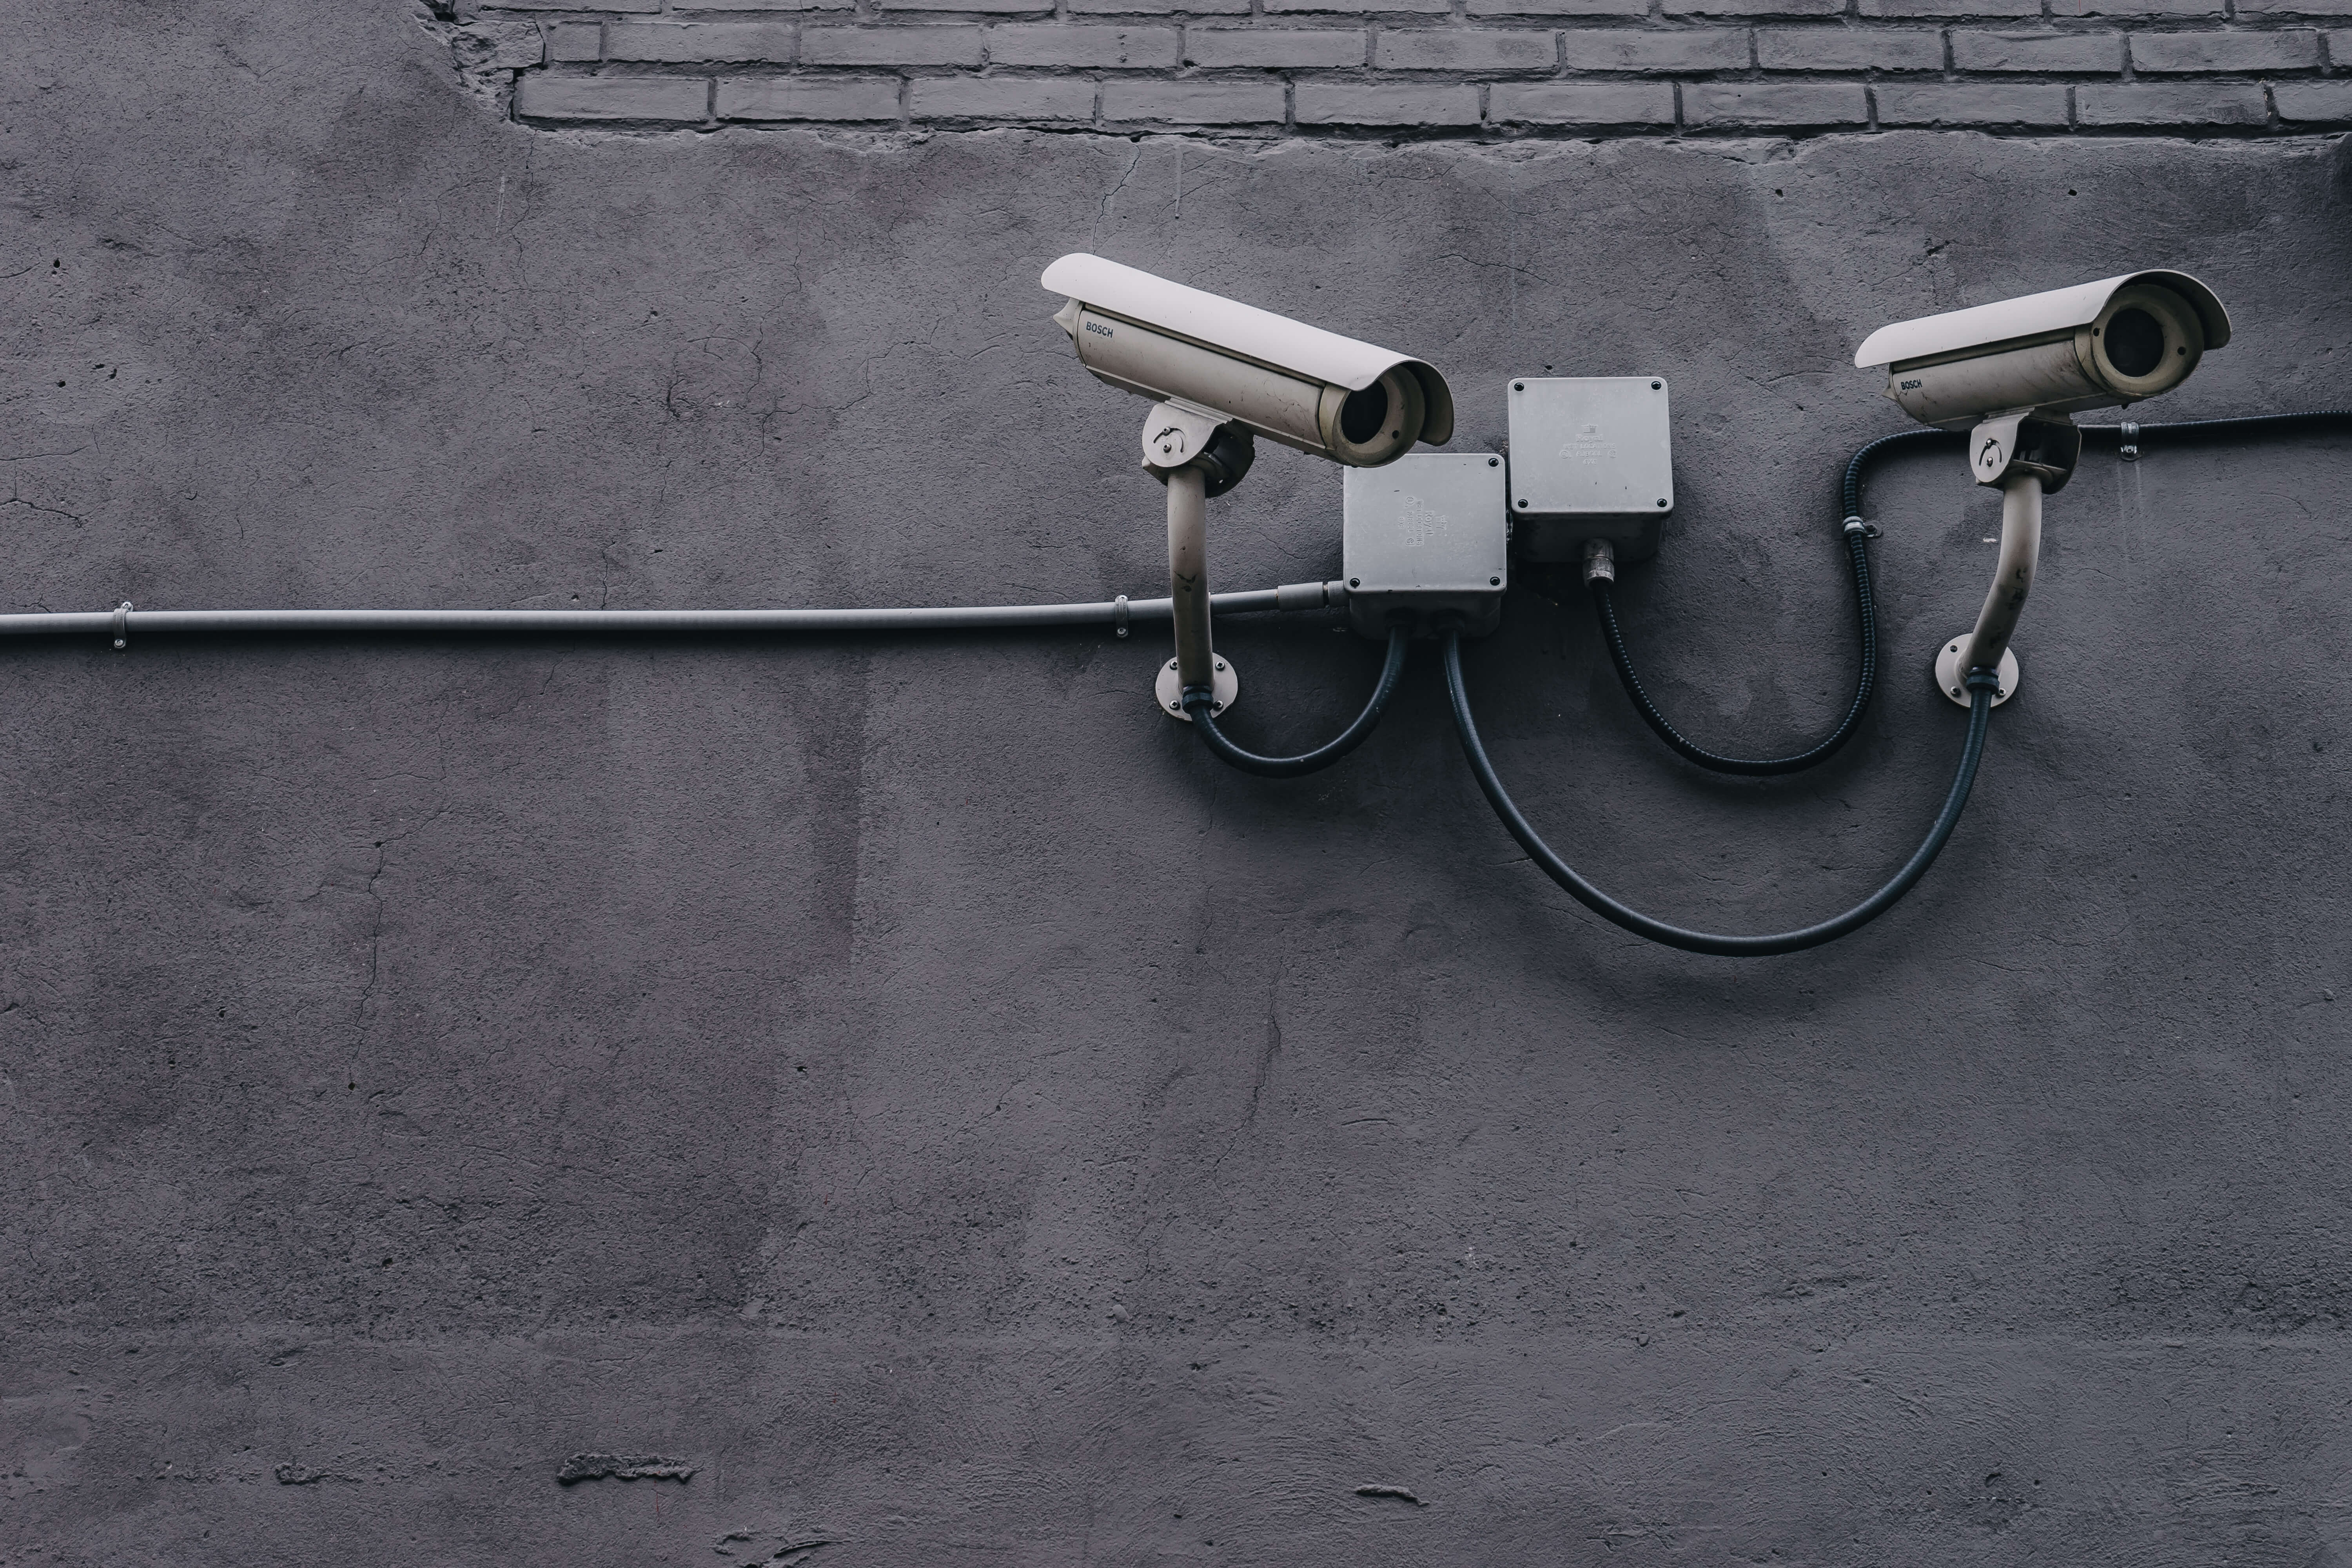 physical security - security cameras